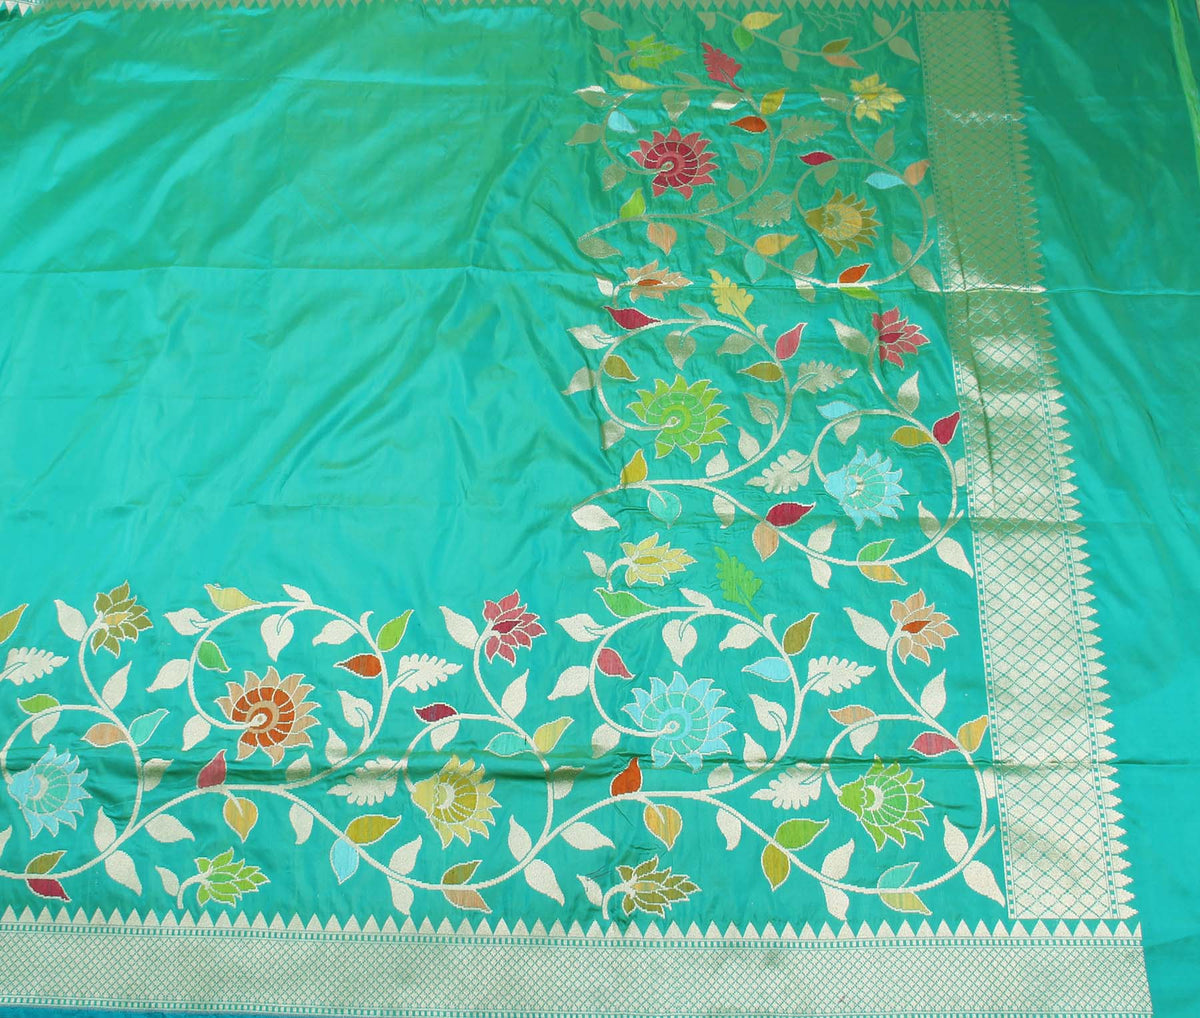 Sea Green Katan Silk Handwoven Banarasi saree with meenedar floral jaal border (2) flat